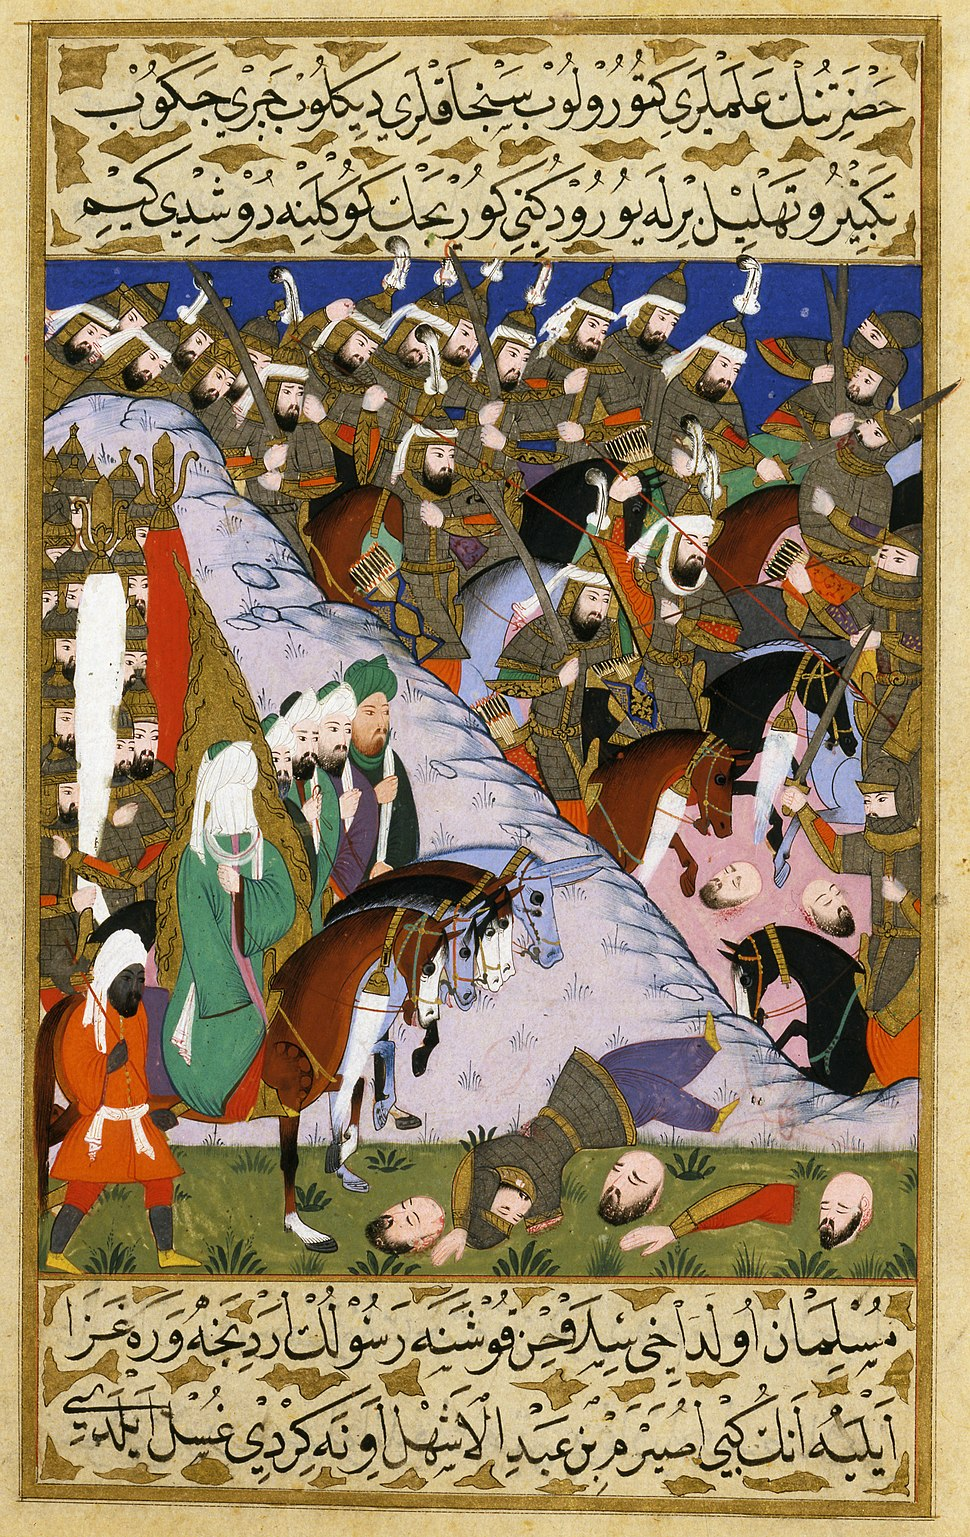 The Prophet Muhammad and the Muslim Army at the Battle of Uhud, from the Siyer-i Nebi, 1595